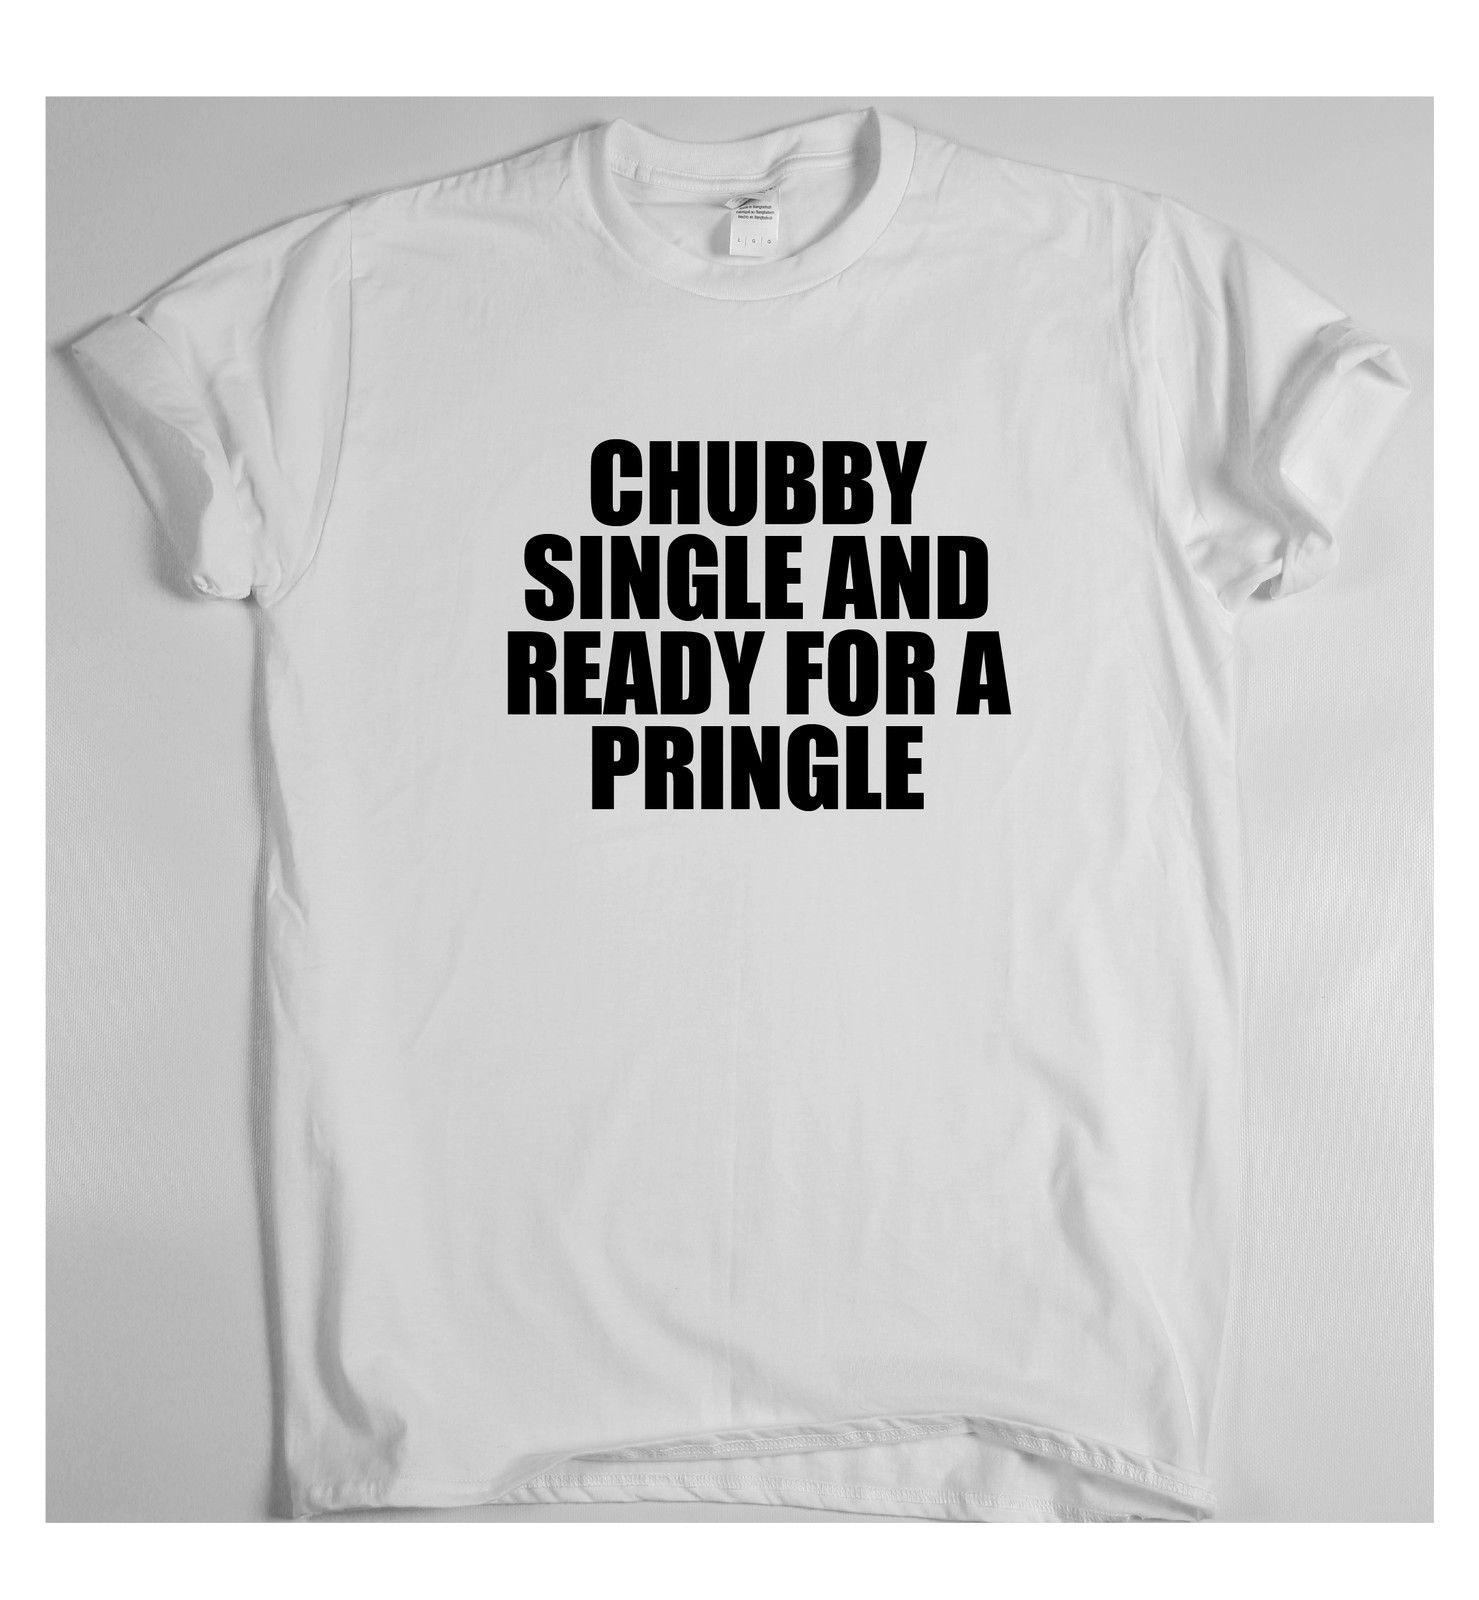 061051bf3 CHUBBY SINGLE AND READY FOR A PRINGLE T shirt men's women's tee top funny  rude Funny free shipping Unisex Casual Tshirt top